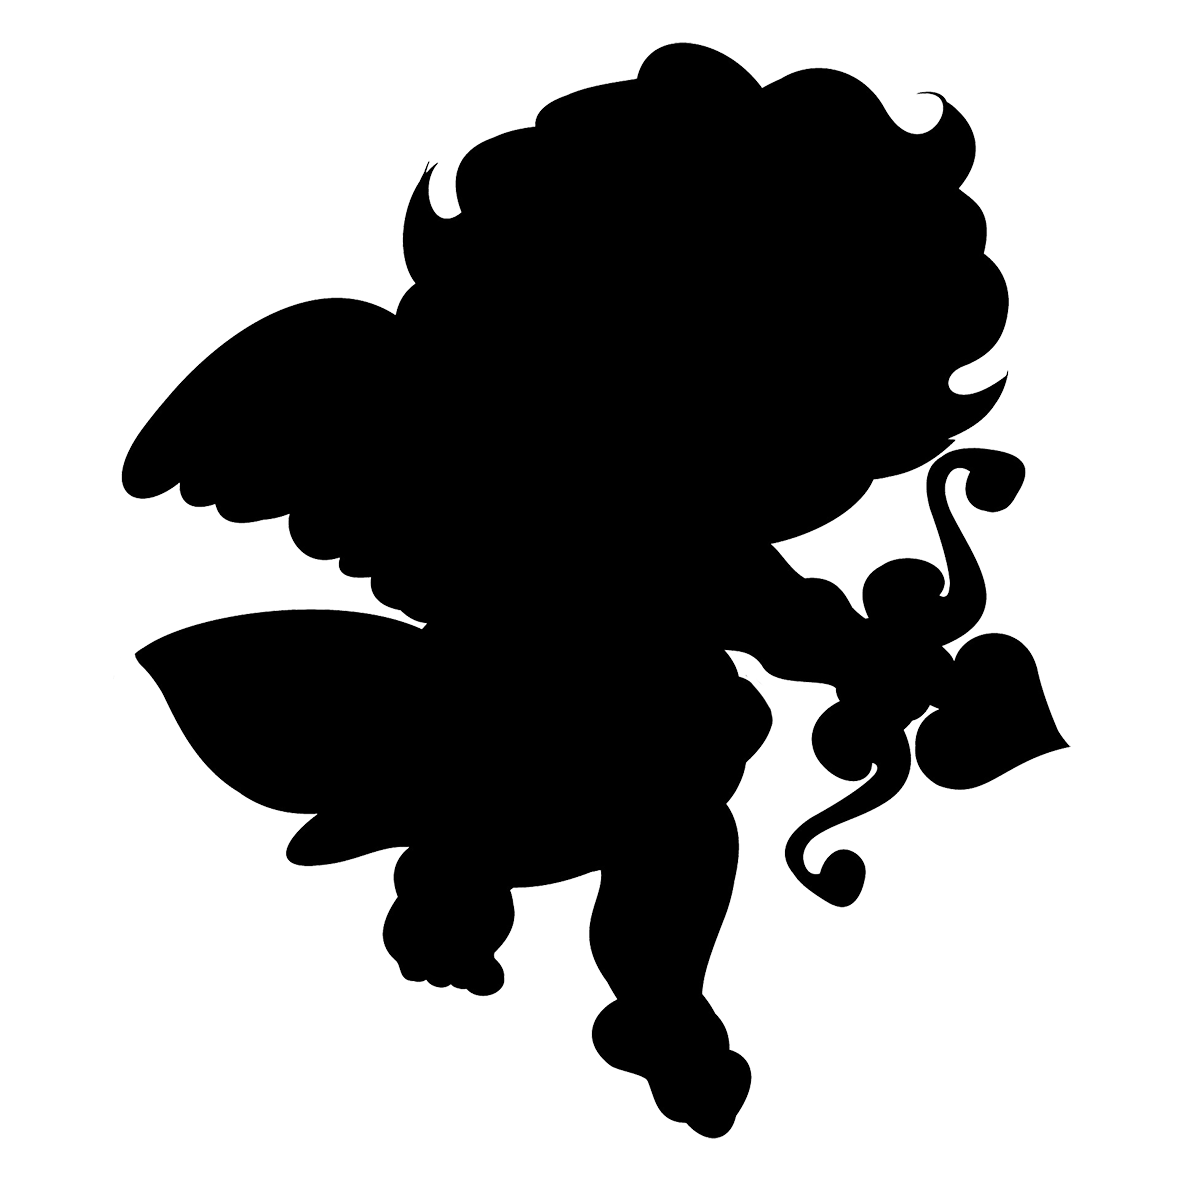 small cupid silhouette